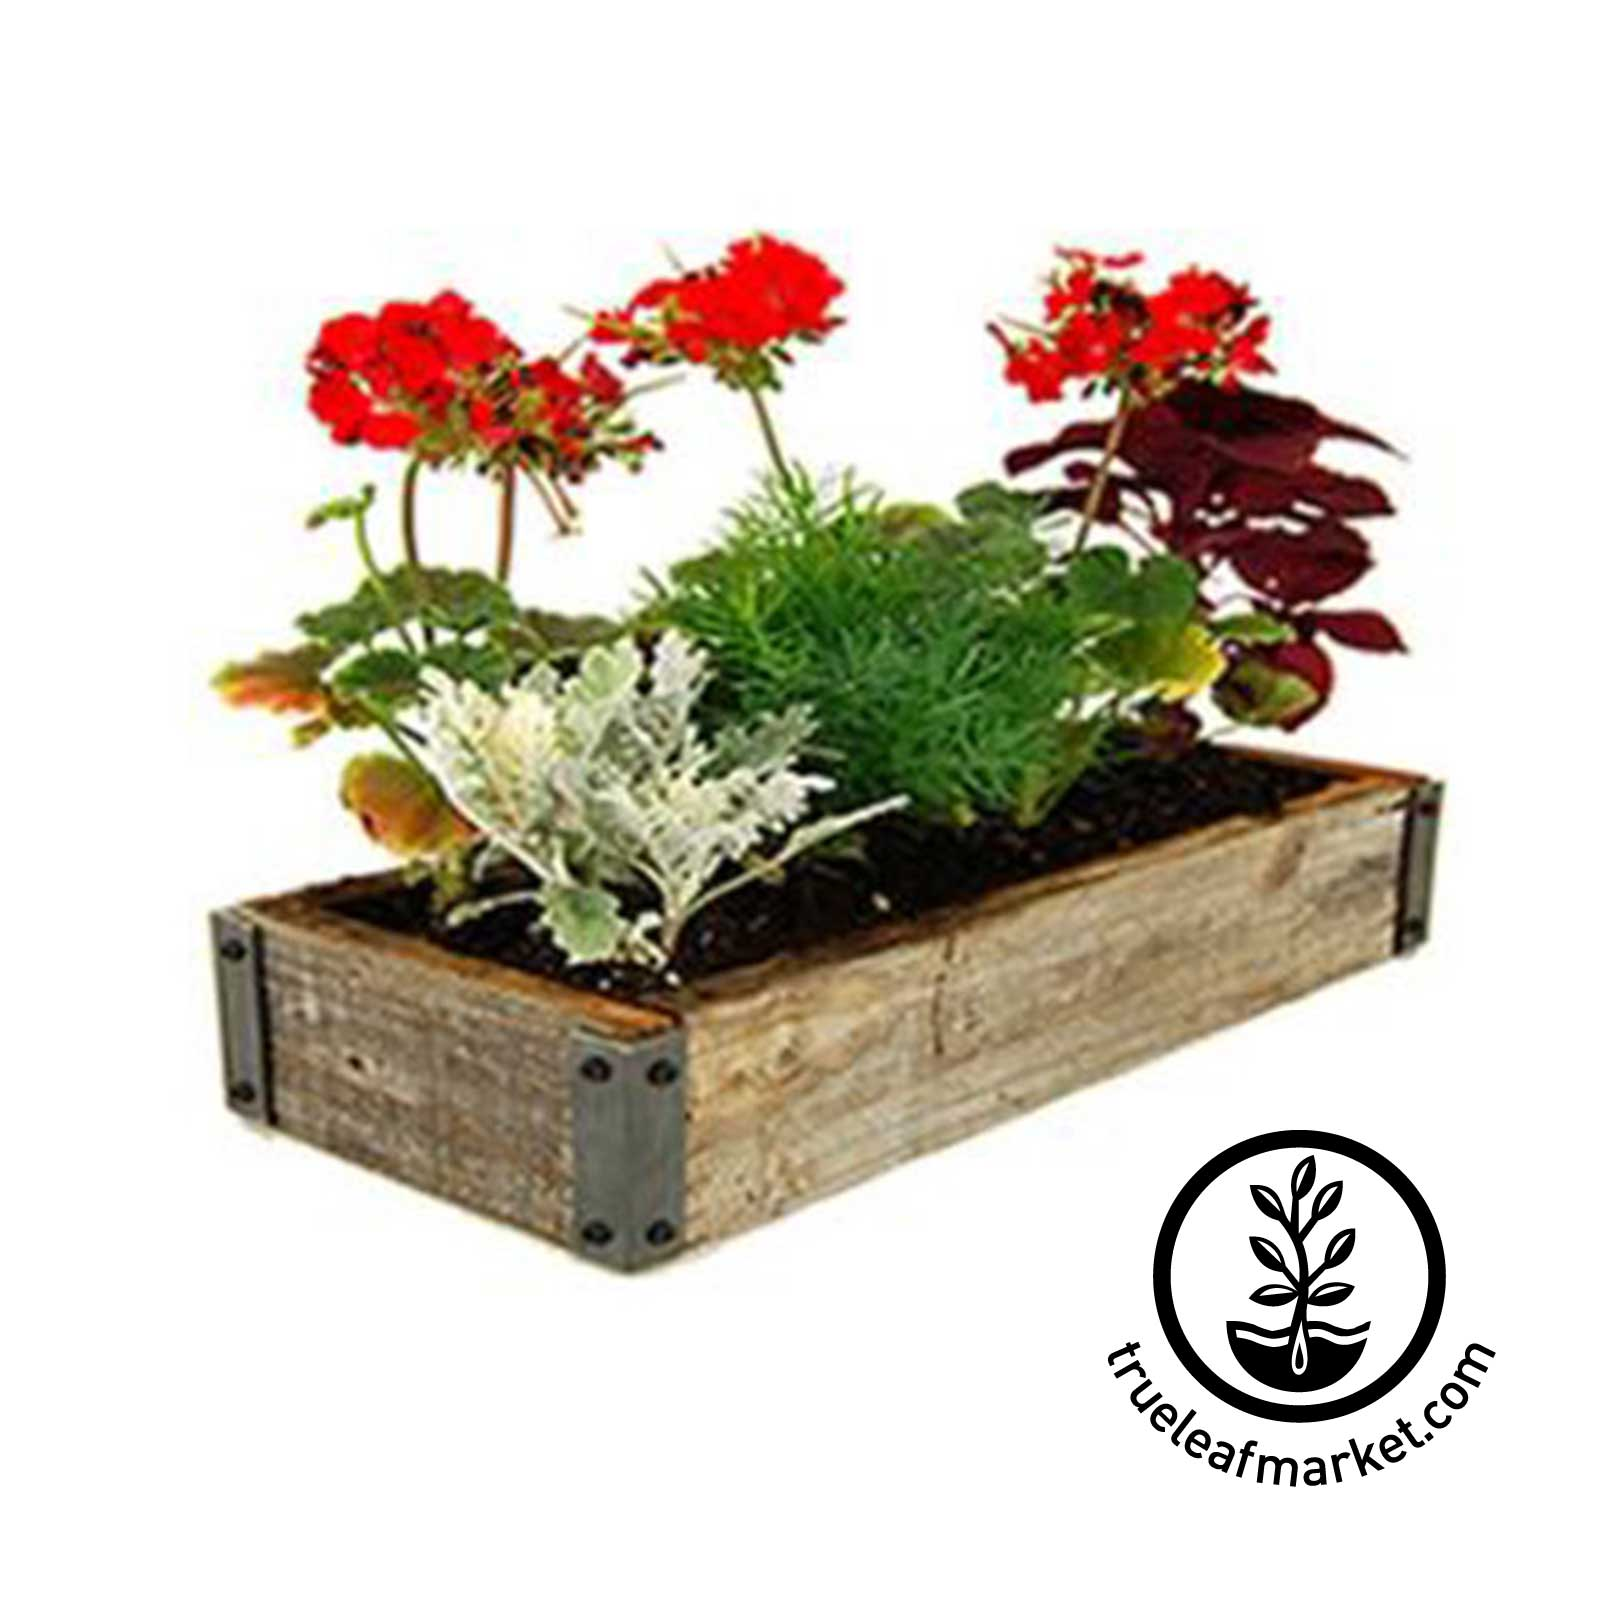 Barnwood Planter Flower Garden Kit Reclaimed barn wood, rustic barnwood, flowers